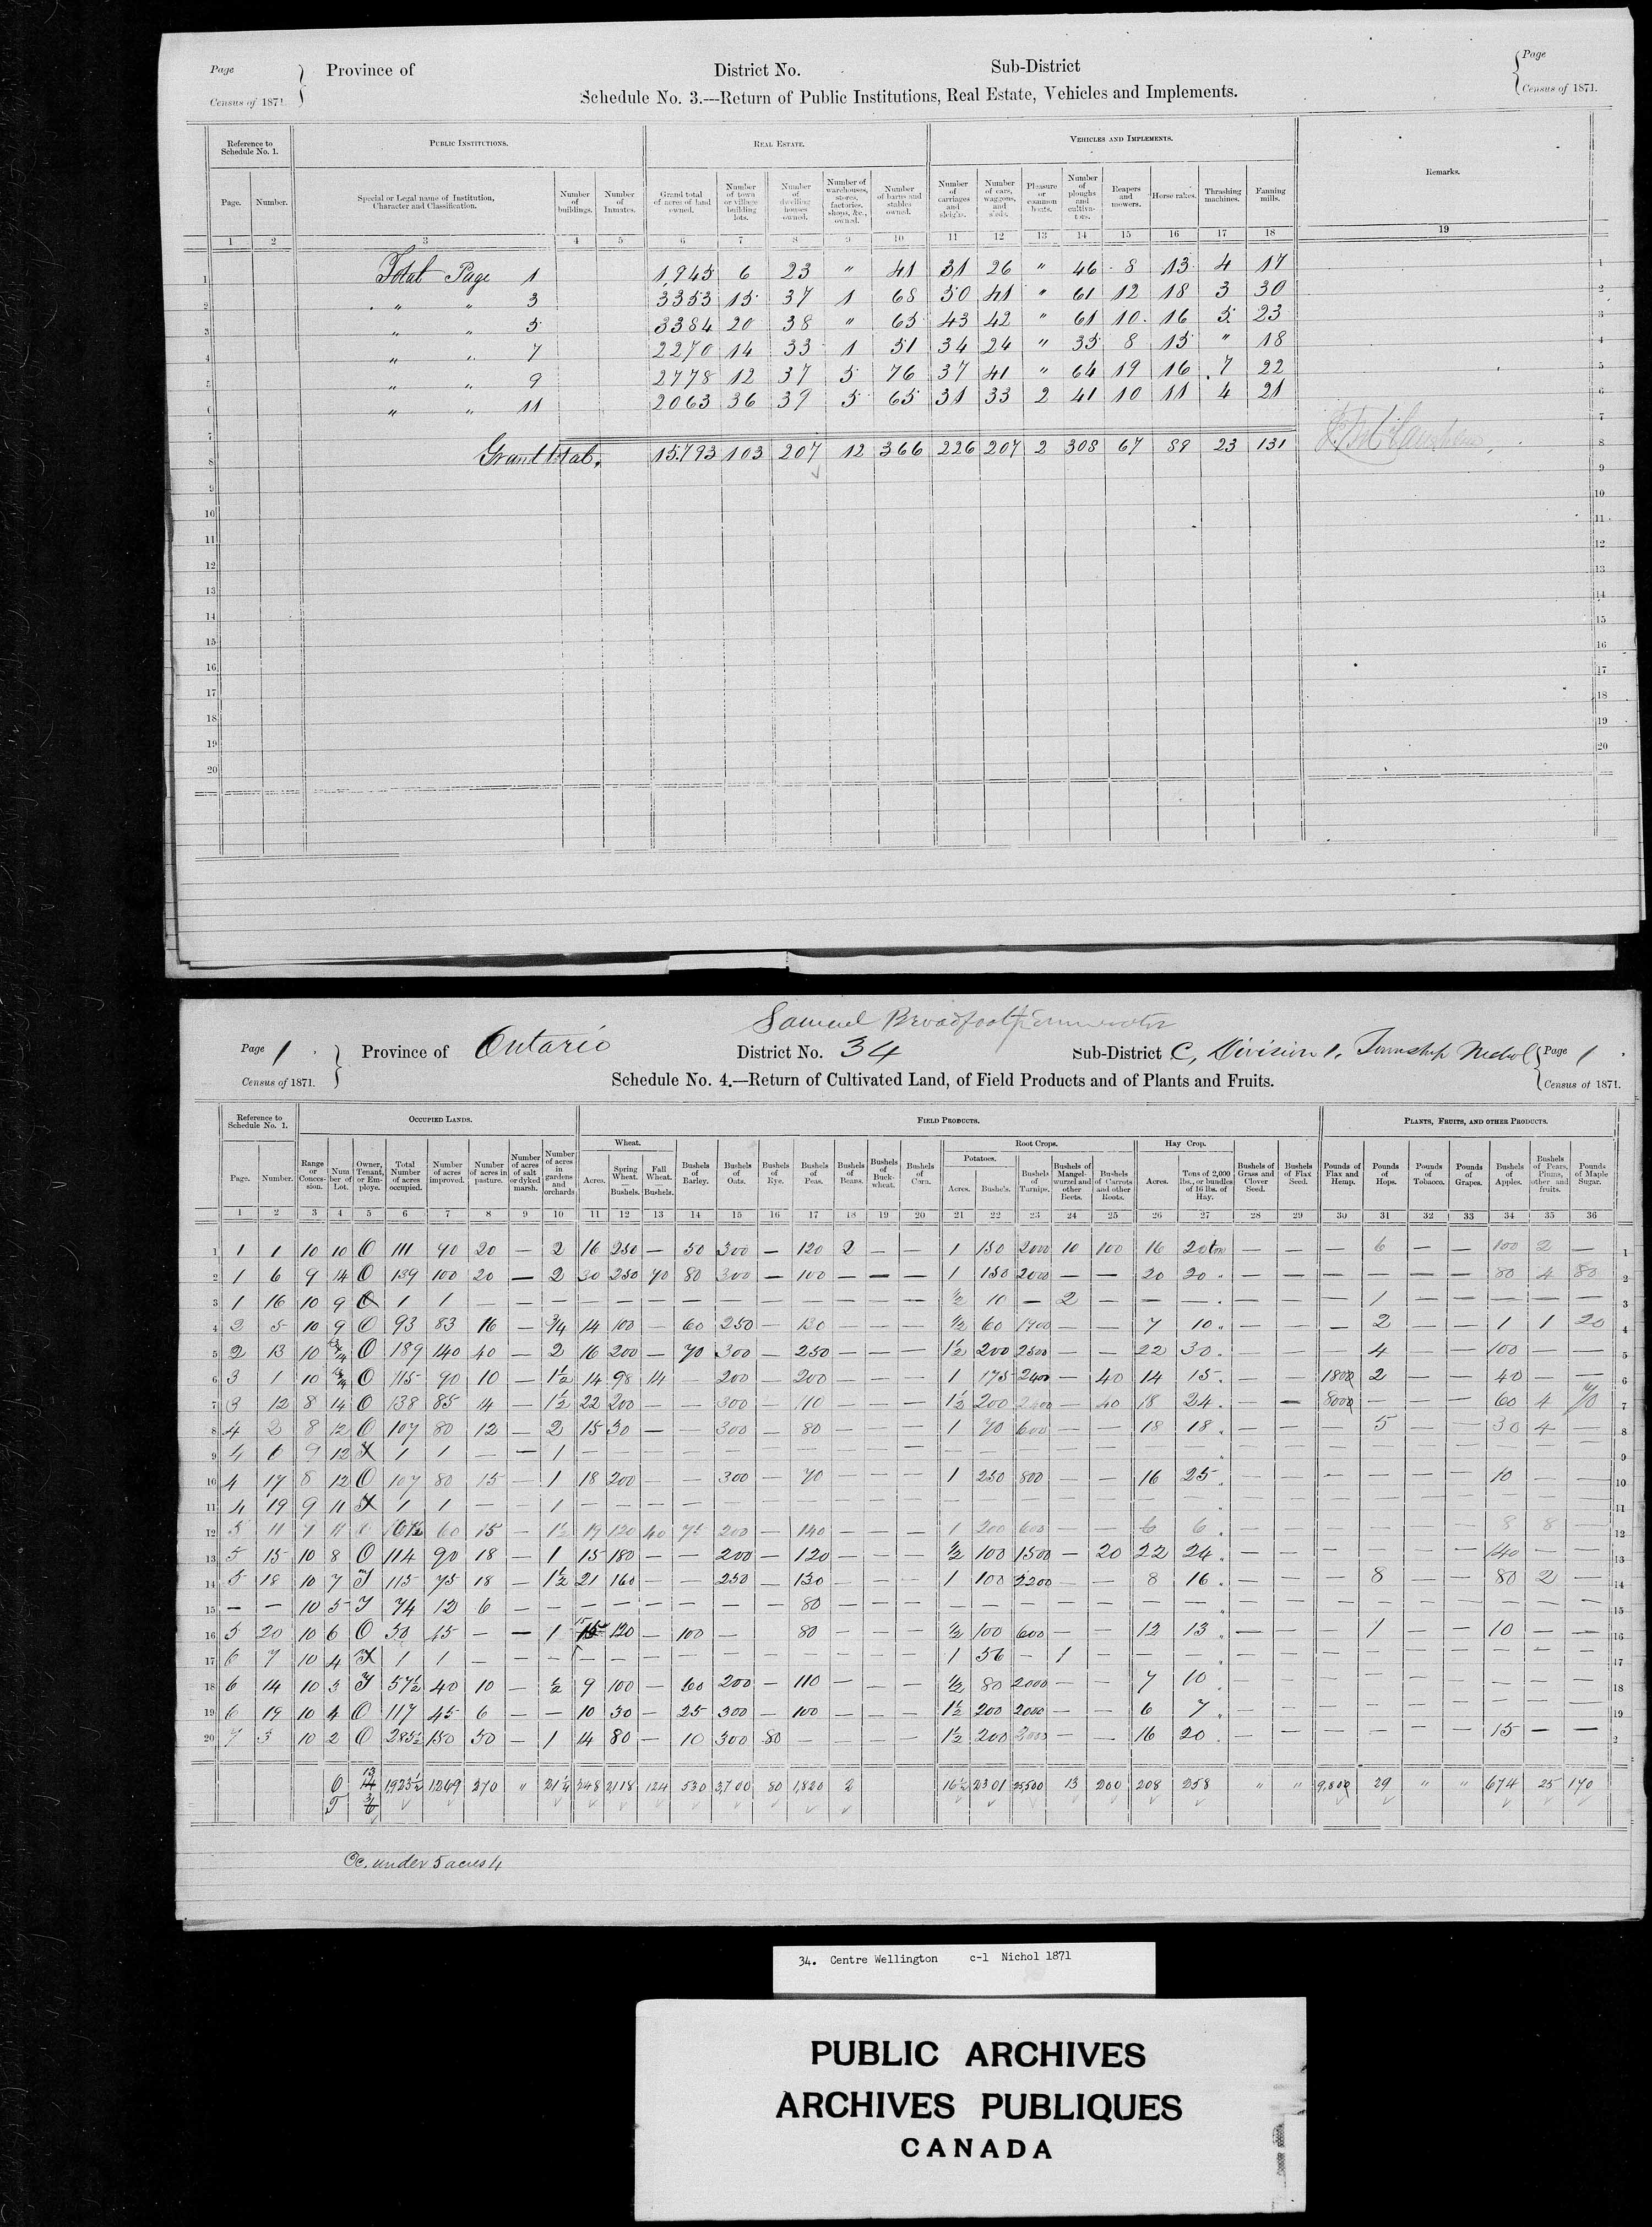 Title: Census of Canada, 1871 - Mikan Number: 142105 - Microform: c-9946